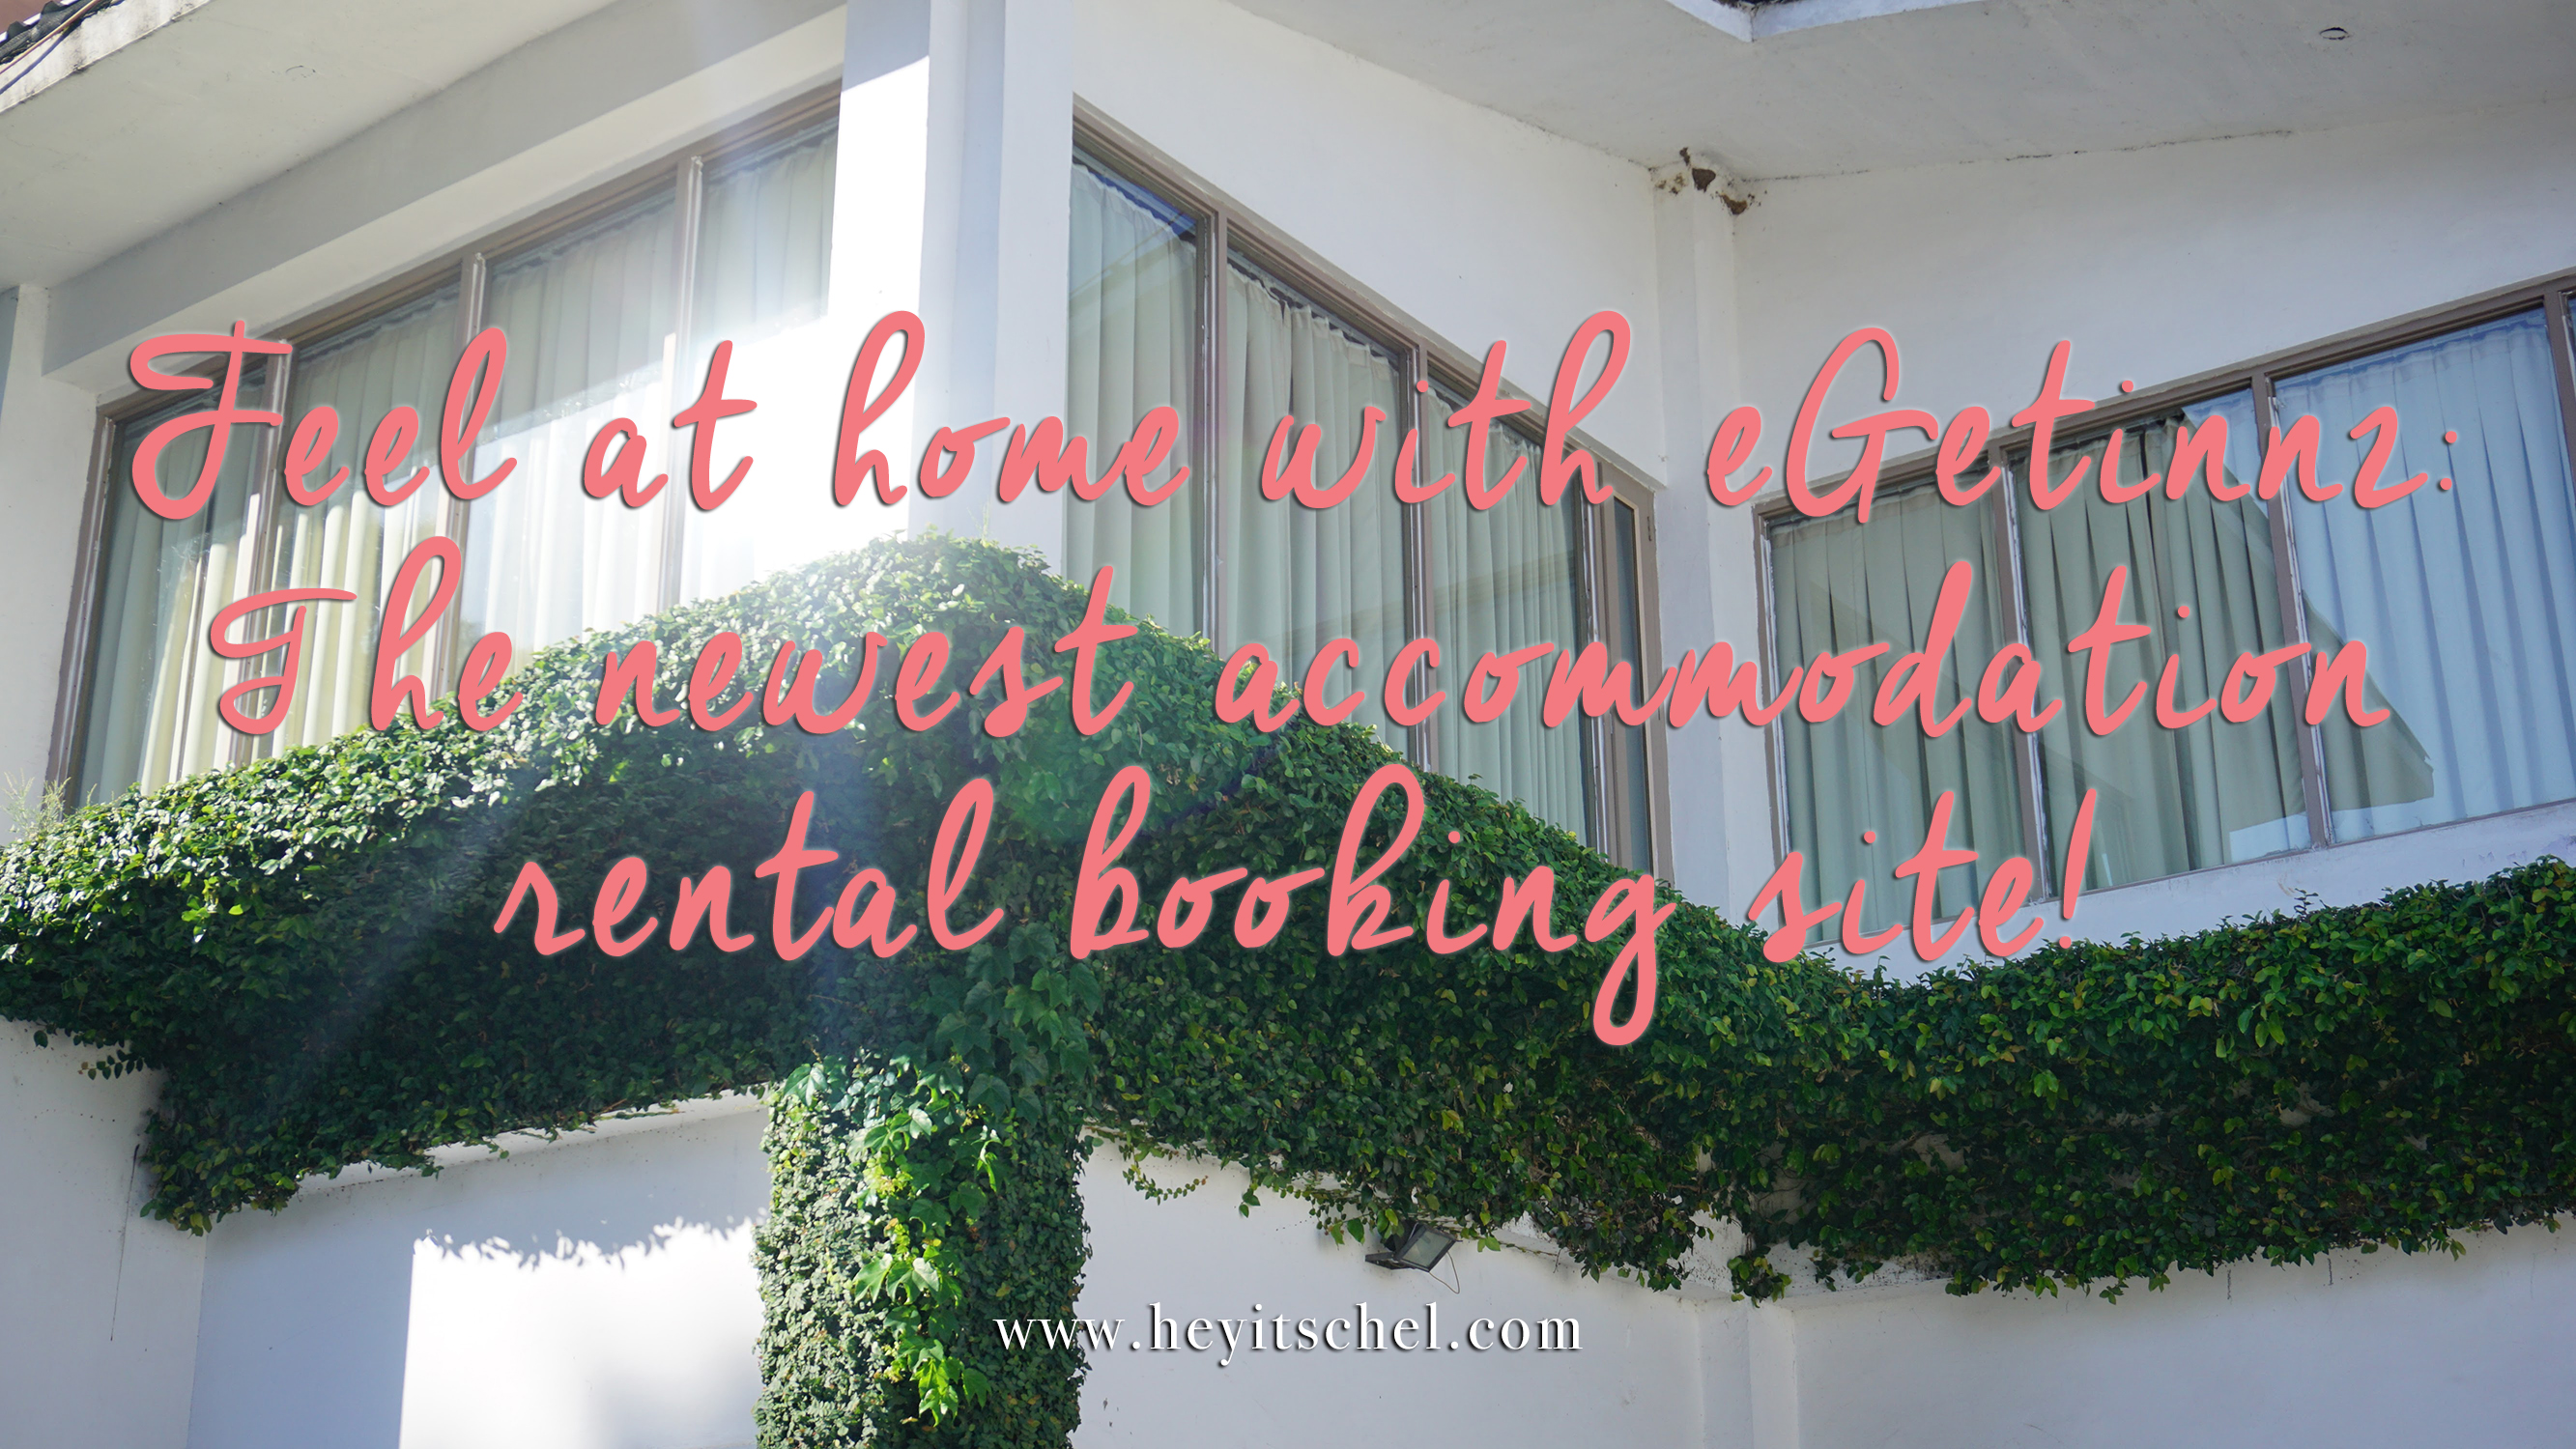 eGetinnz the newest accommodation rental booking site!